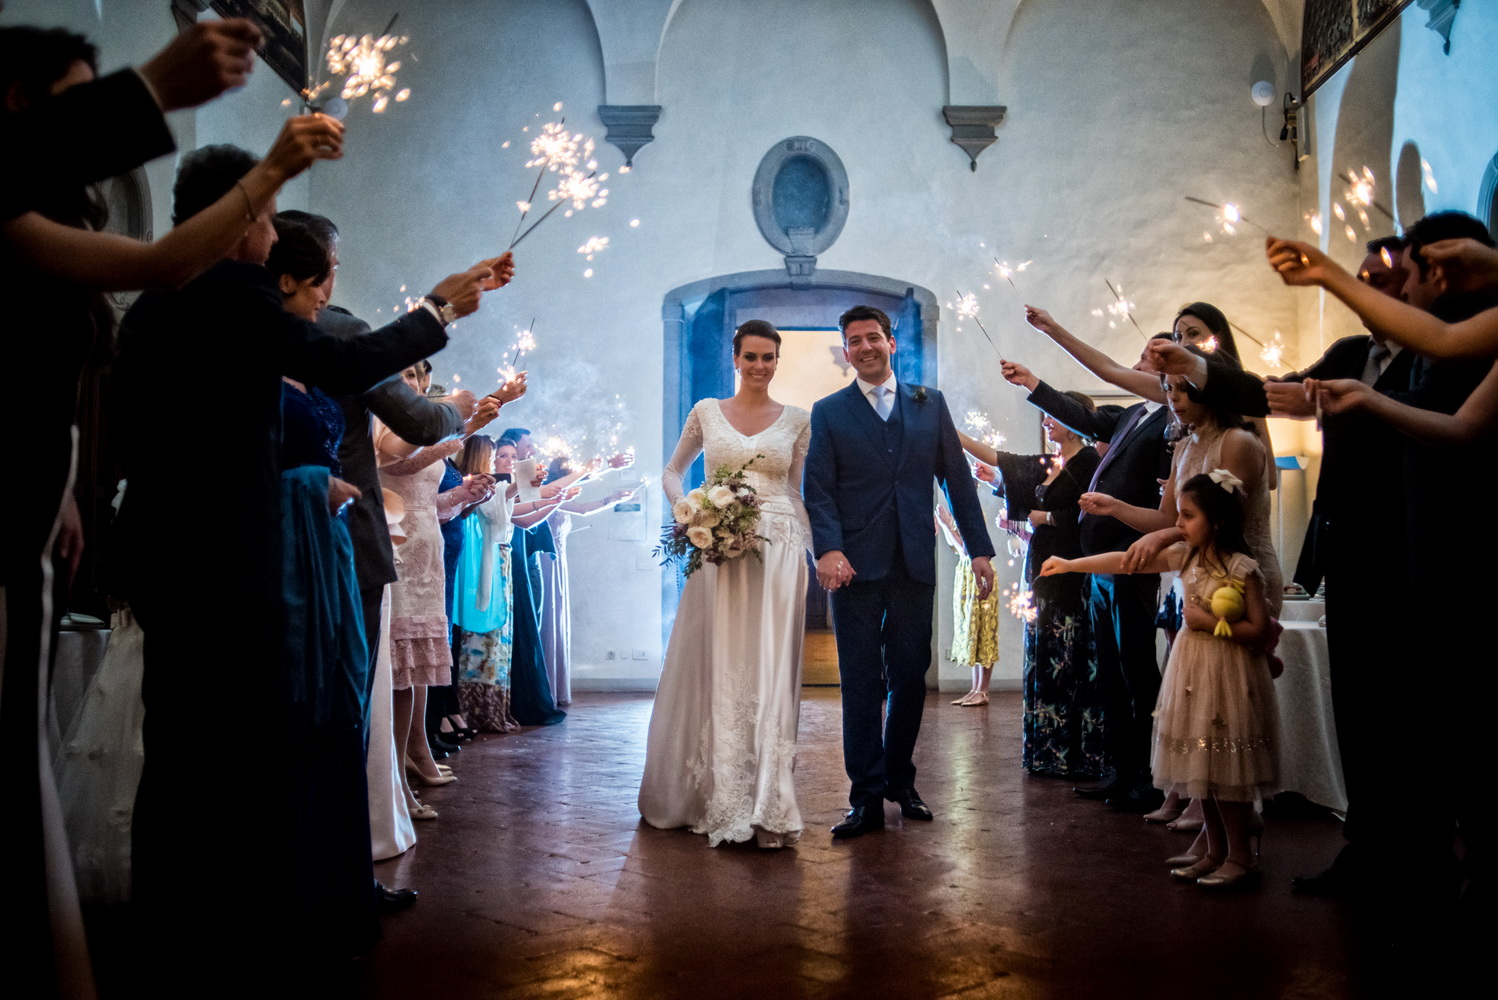 Destination Wedding Toscana | Caroline e Fernando destination wedding na toscana | caroline e fernando Destination Wedding na Toscana | Caroline e Fernando marco zammarchi destination wedding 61